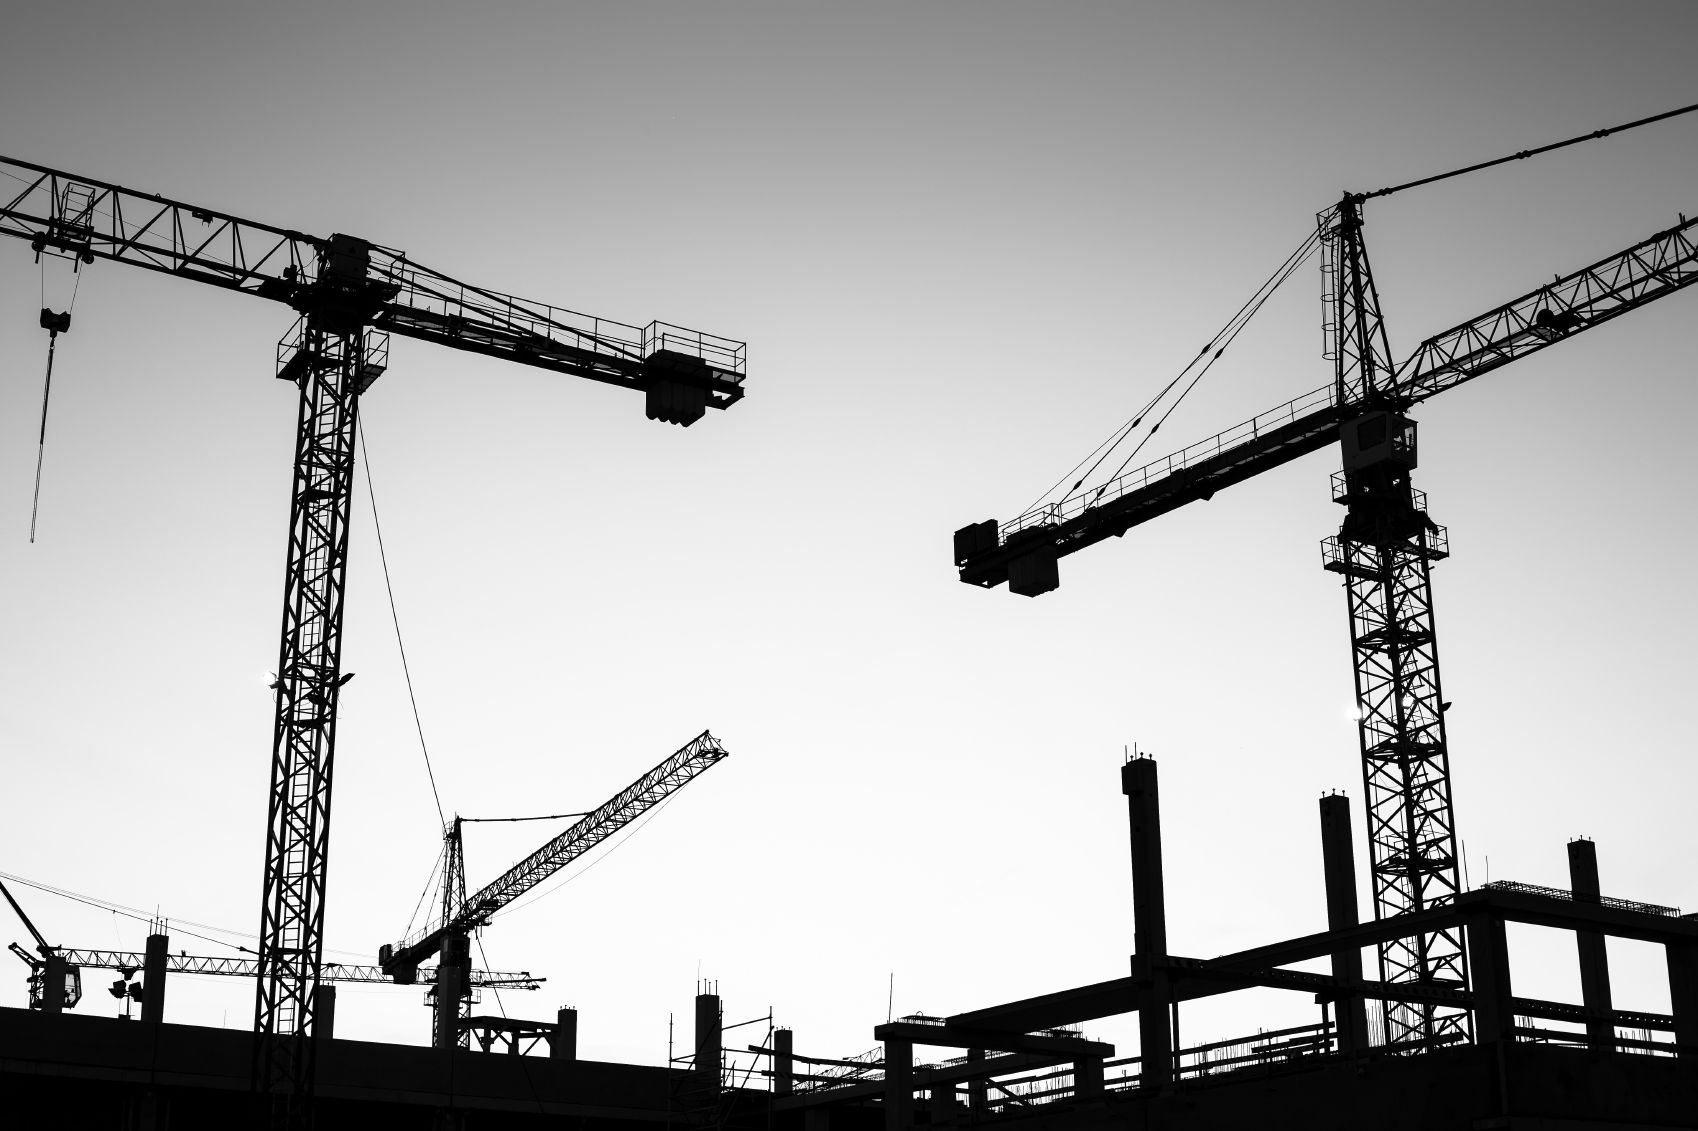 Black and white photo of two large cranes